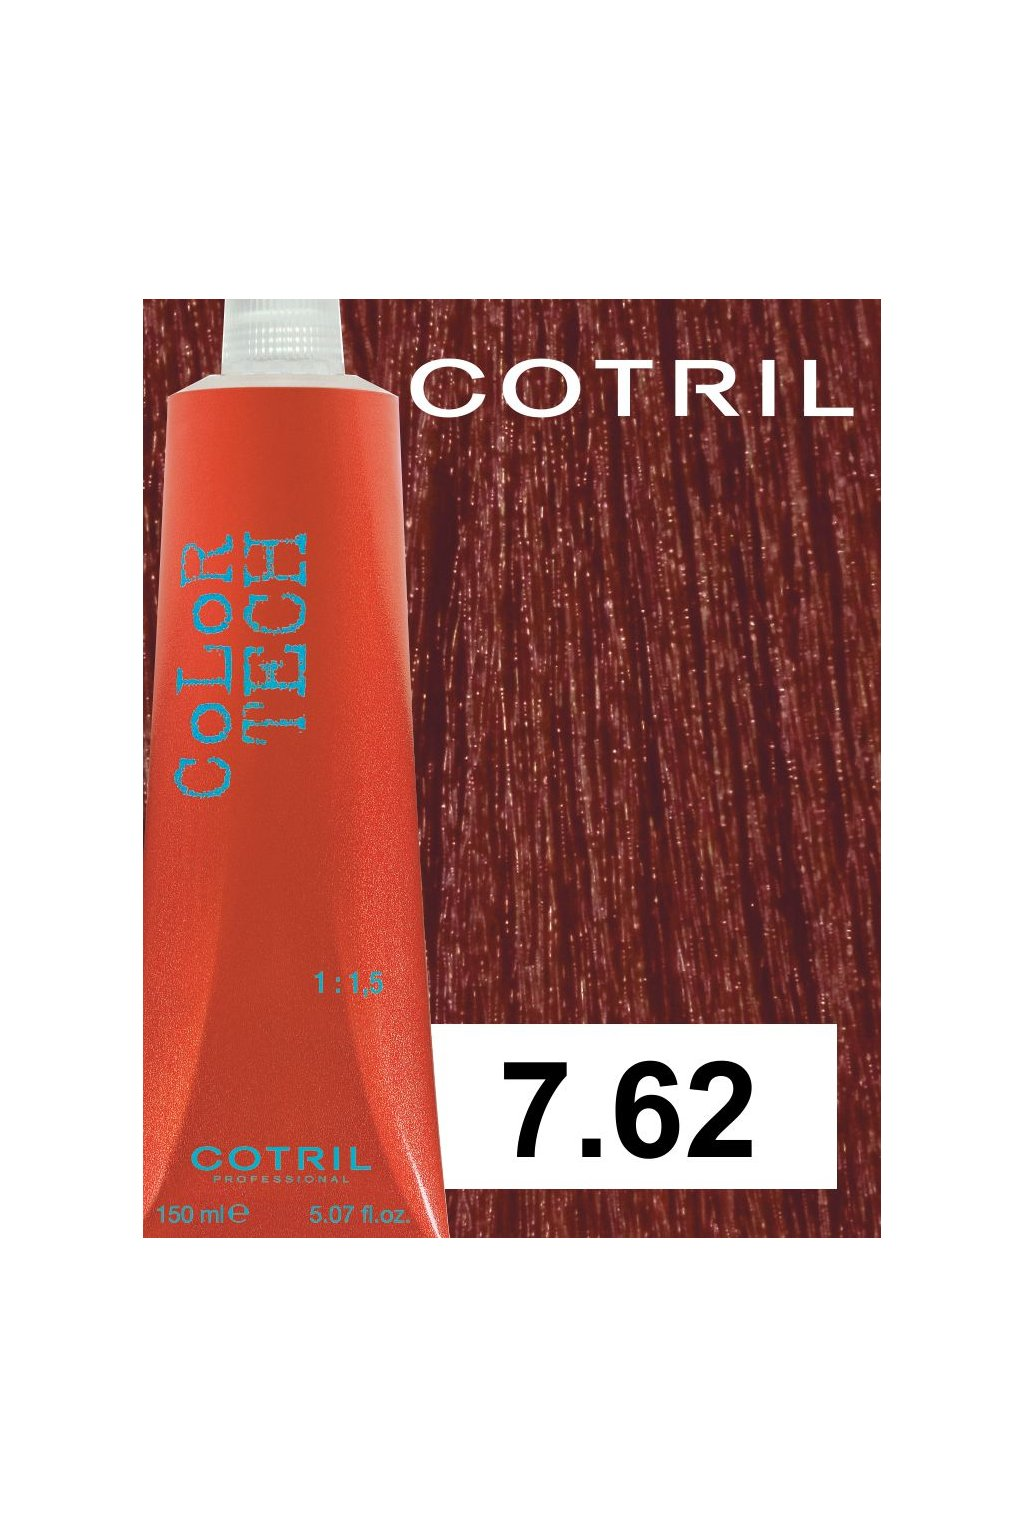 7 62 ct cotril1